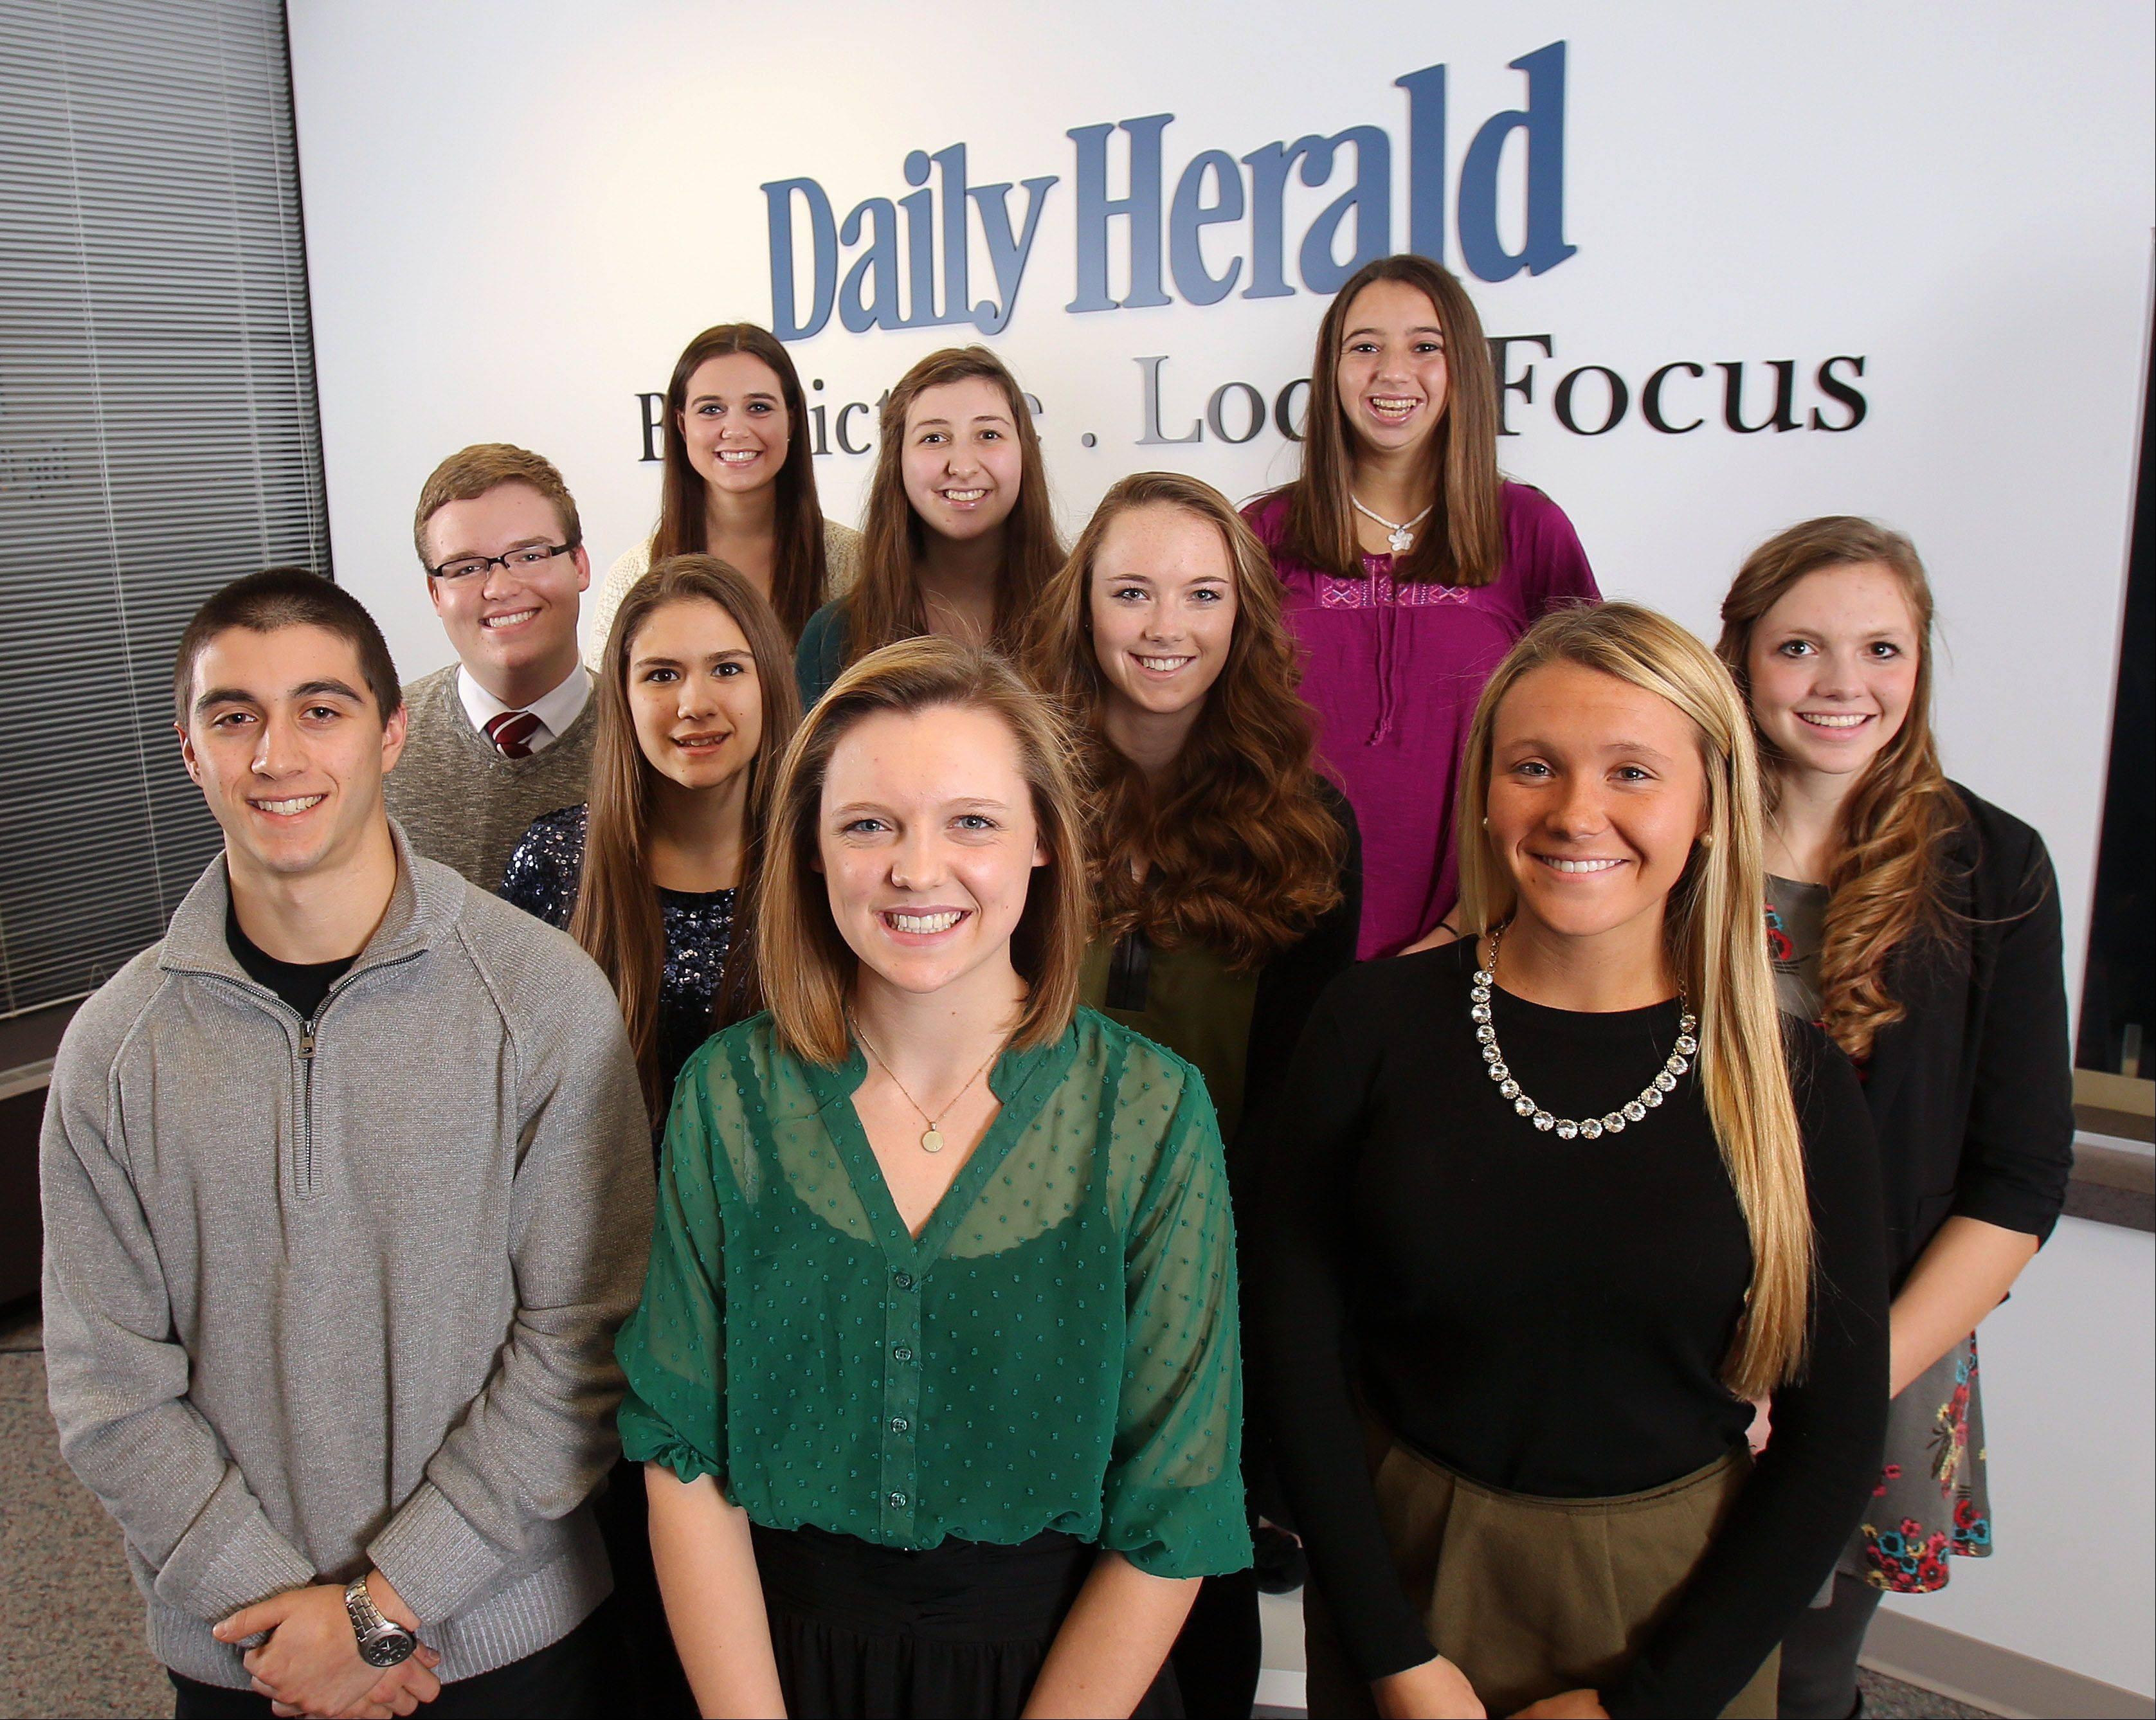 Meet the 2013-14 Lake County Leadership Team. Front row, from left: Sam Panitch, Adlai E. Stevenson High School; Allie Bujak, Libertyville High School and Annie Kotlarz, Woodlands Academy of the Sacred Heart. Middle row: Charlie Suhling, Warren Township High School; Faith Gazdzicki, Round Lake; Emily Prey, Libertyville; Paige Vaughn, Grayslake Central. Back row from left: Annalisa Roncone, Lakes Community High School; Shannon Pedersen, Grant and Rachel Jacoby, Vernon Hills High School.